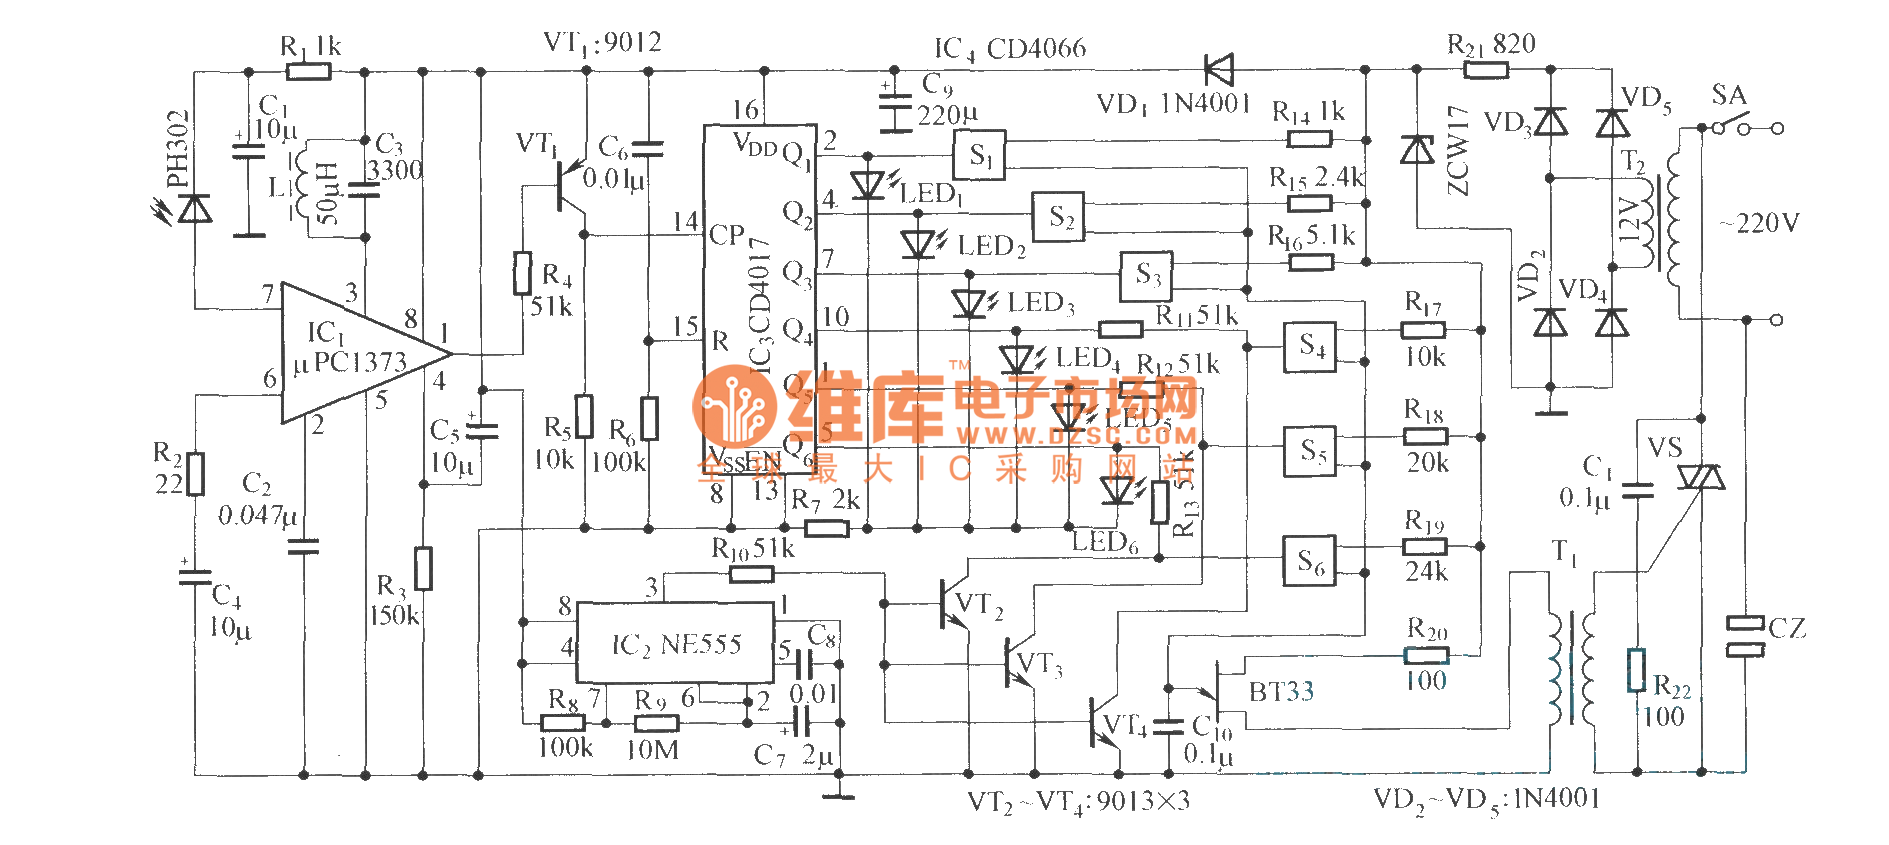 Infrared Remote Control Fan Power Supply Outlet Circuit Diagram For An Ne555